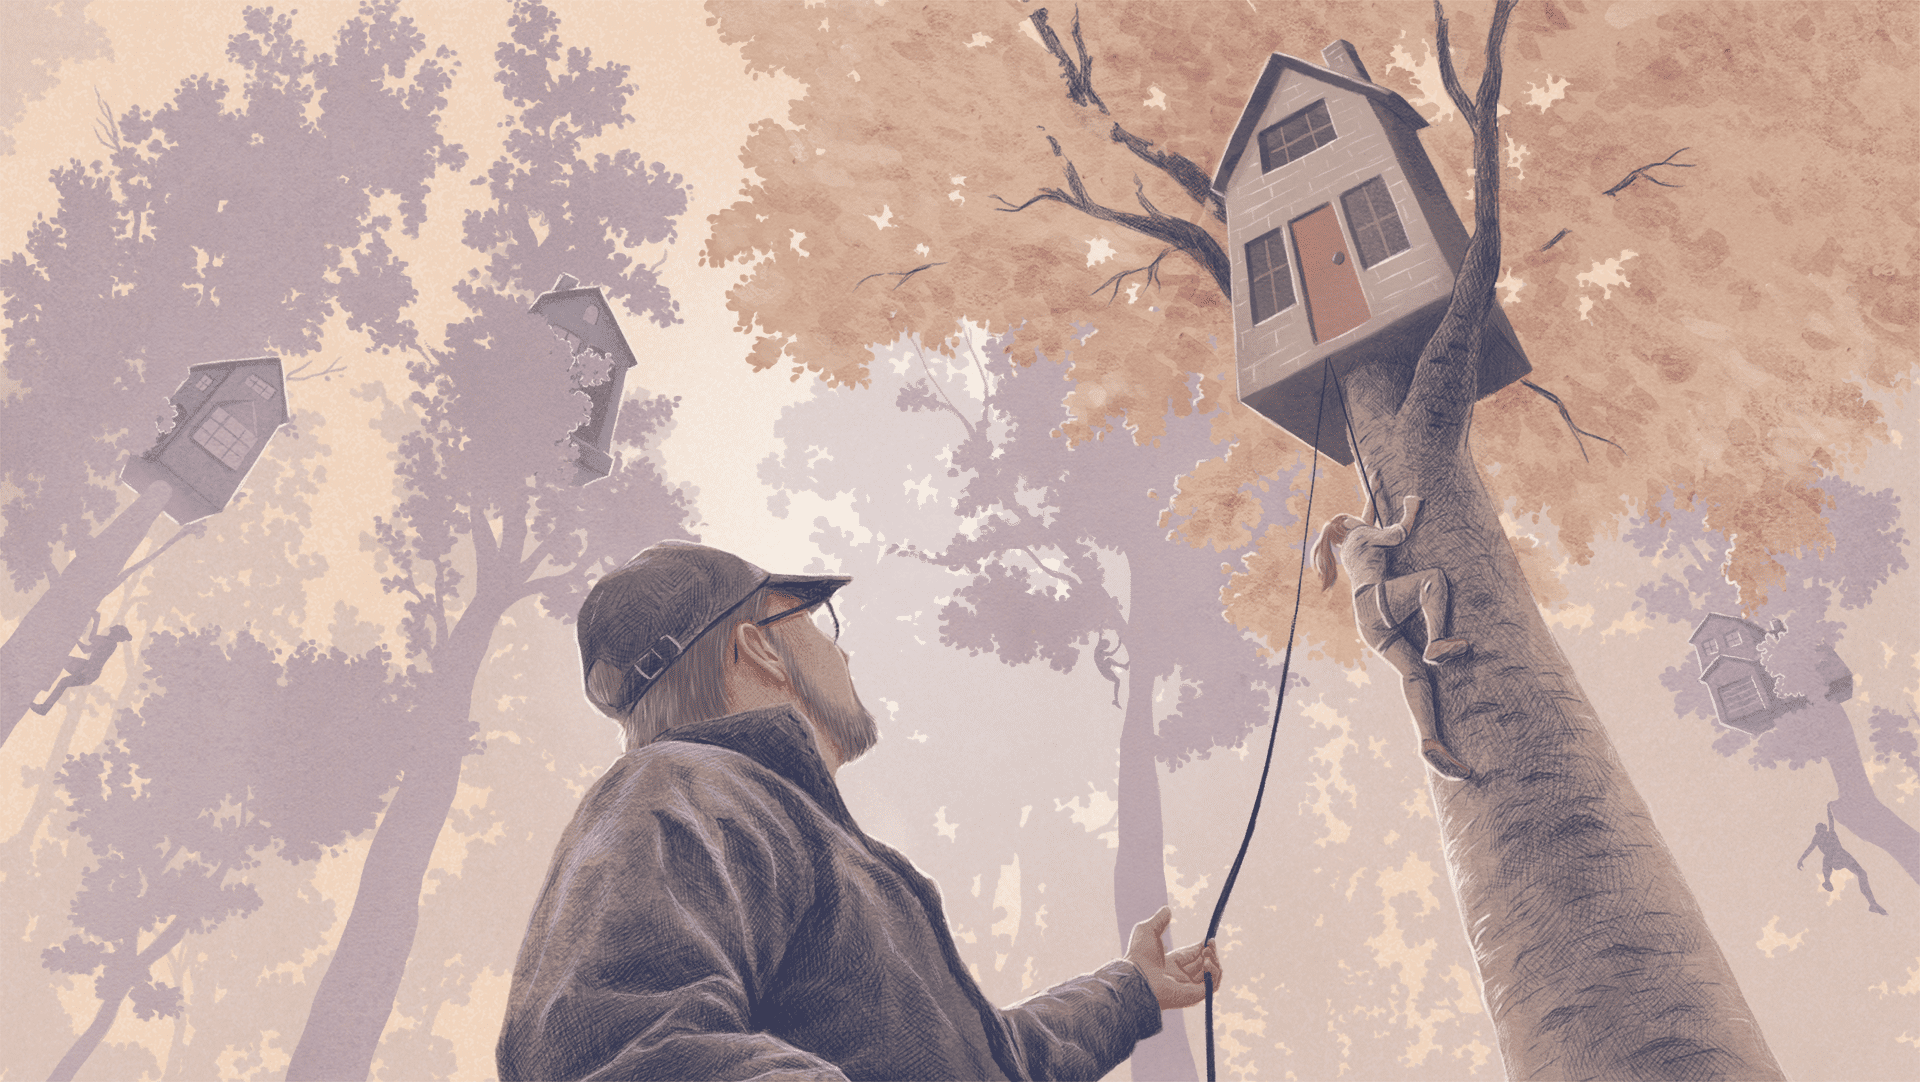 illustration of man by the tree house